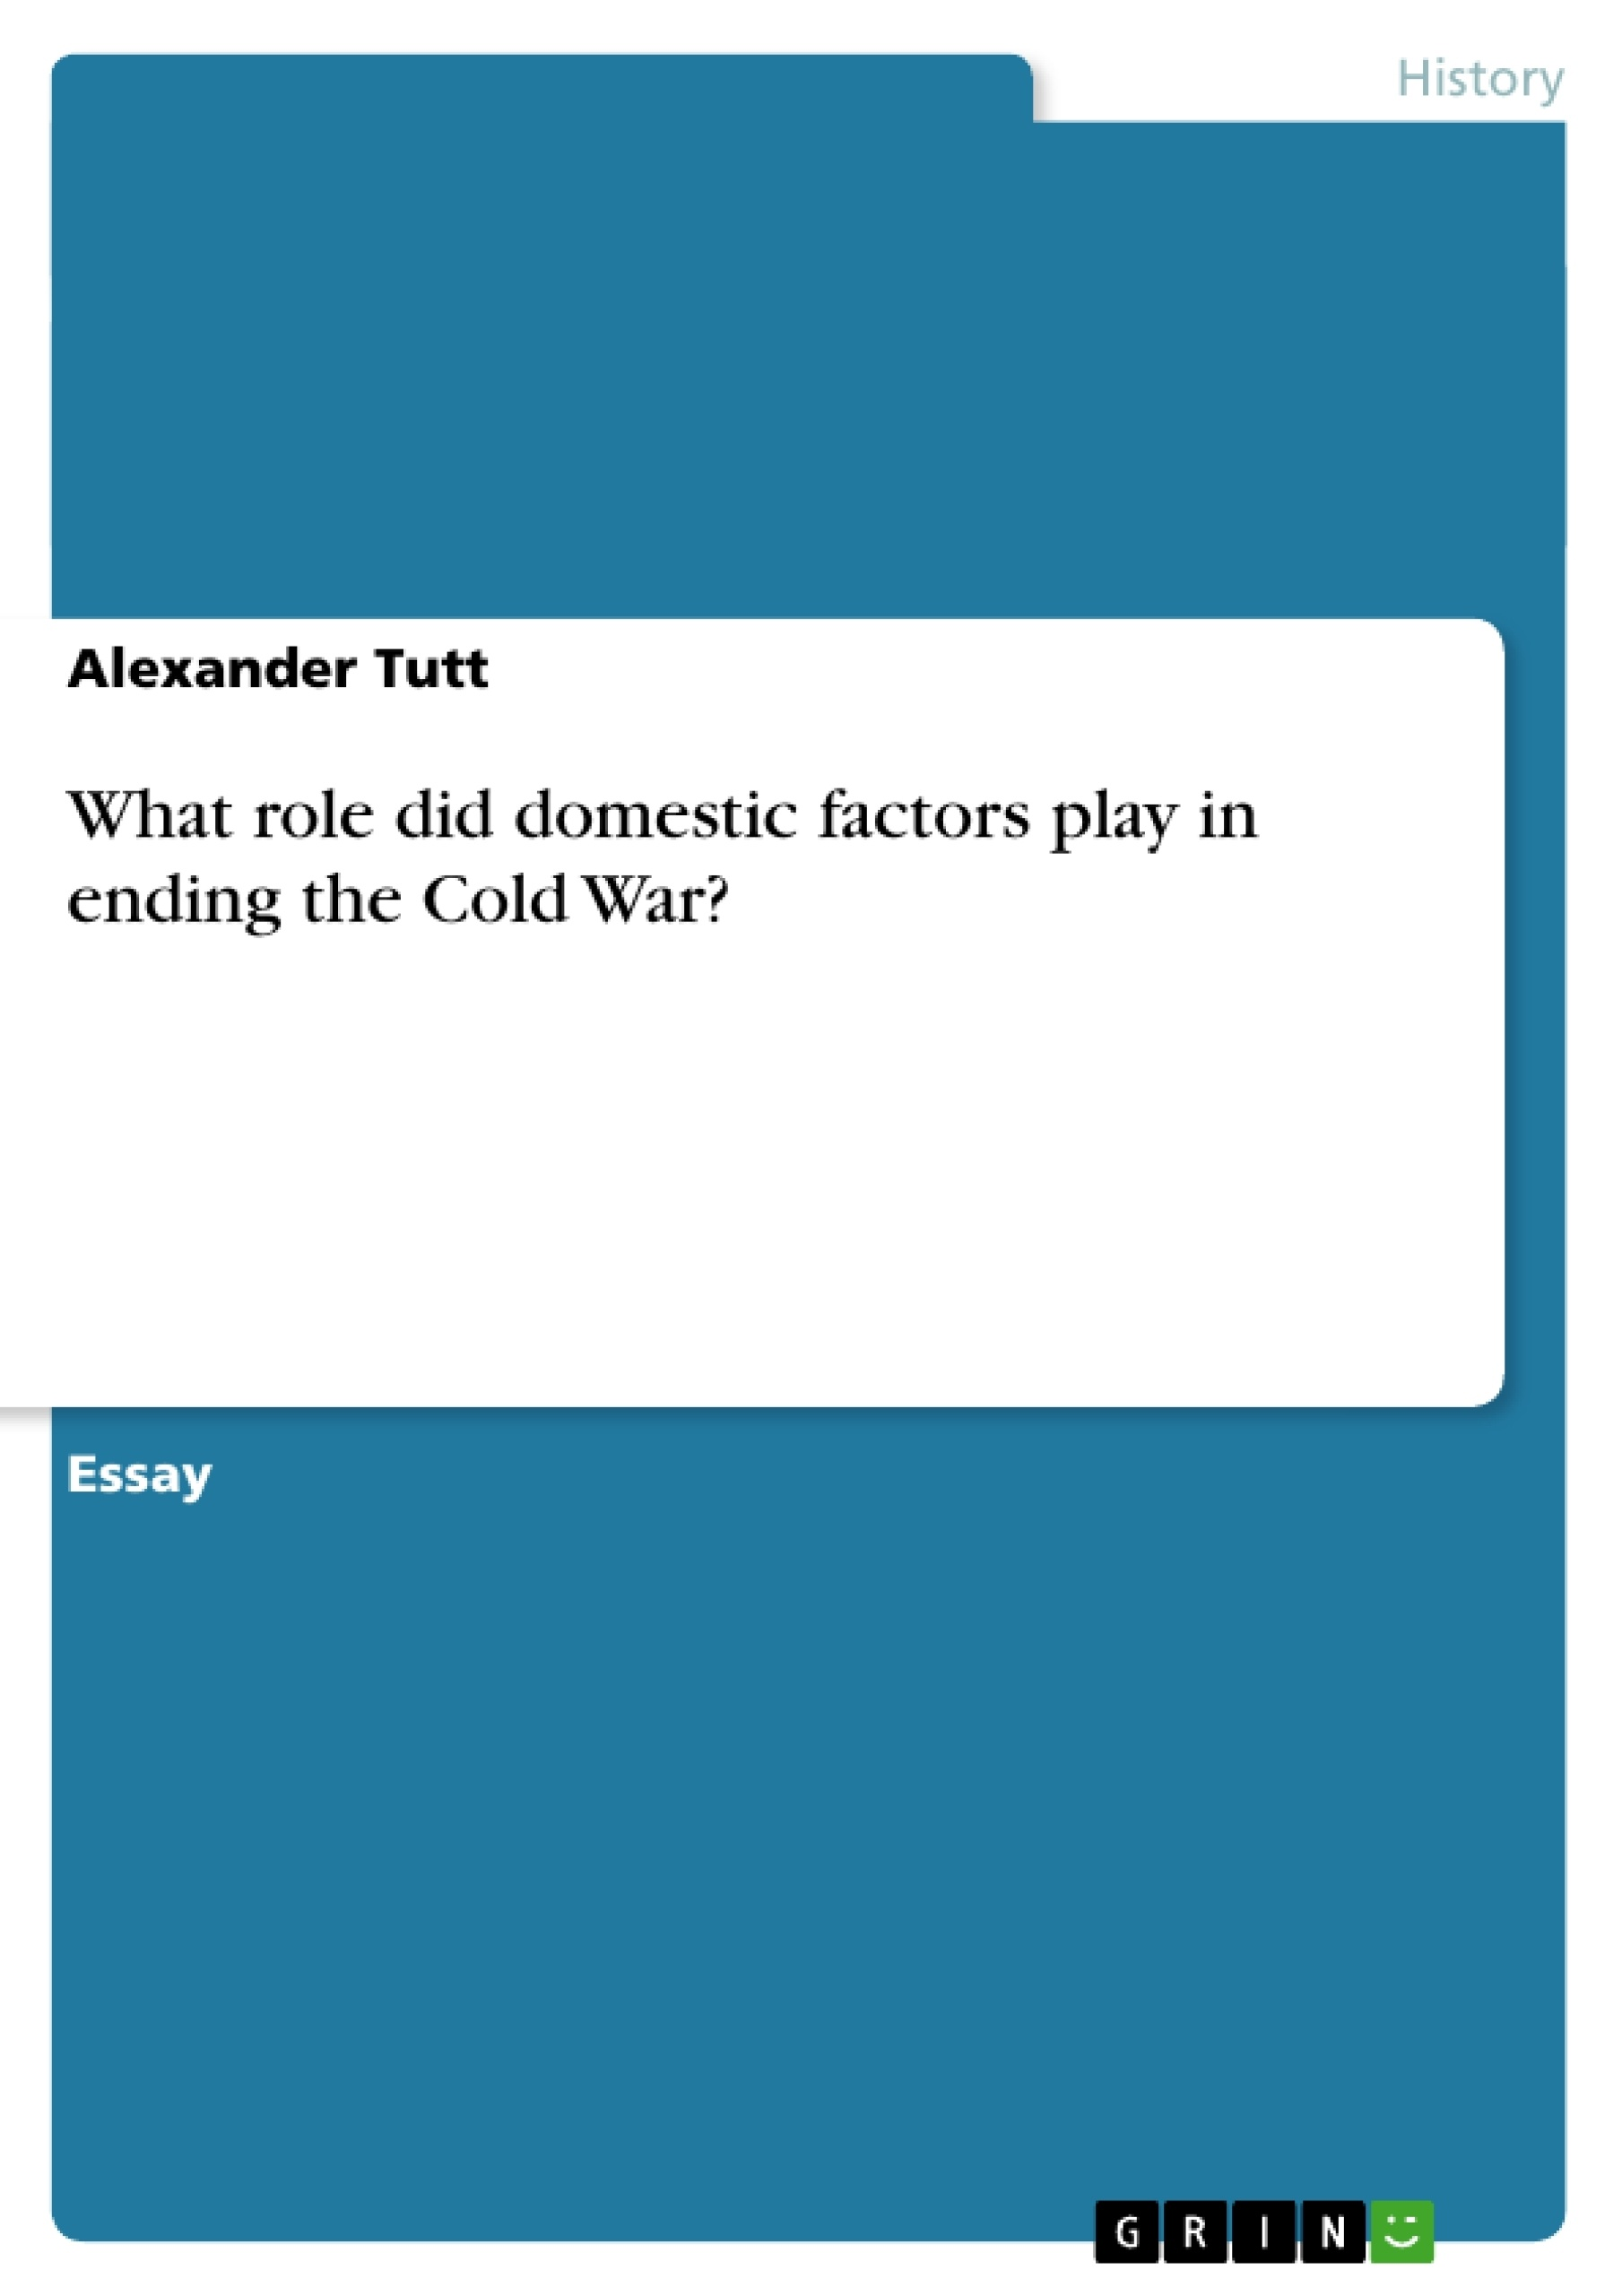 Title: What role did domestic factors play in ending the Cold War?